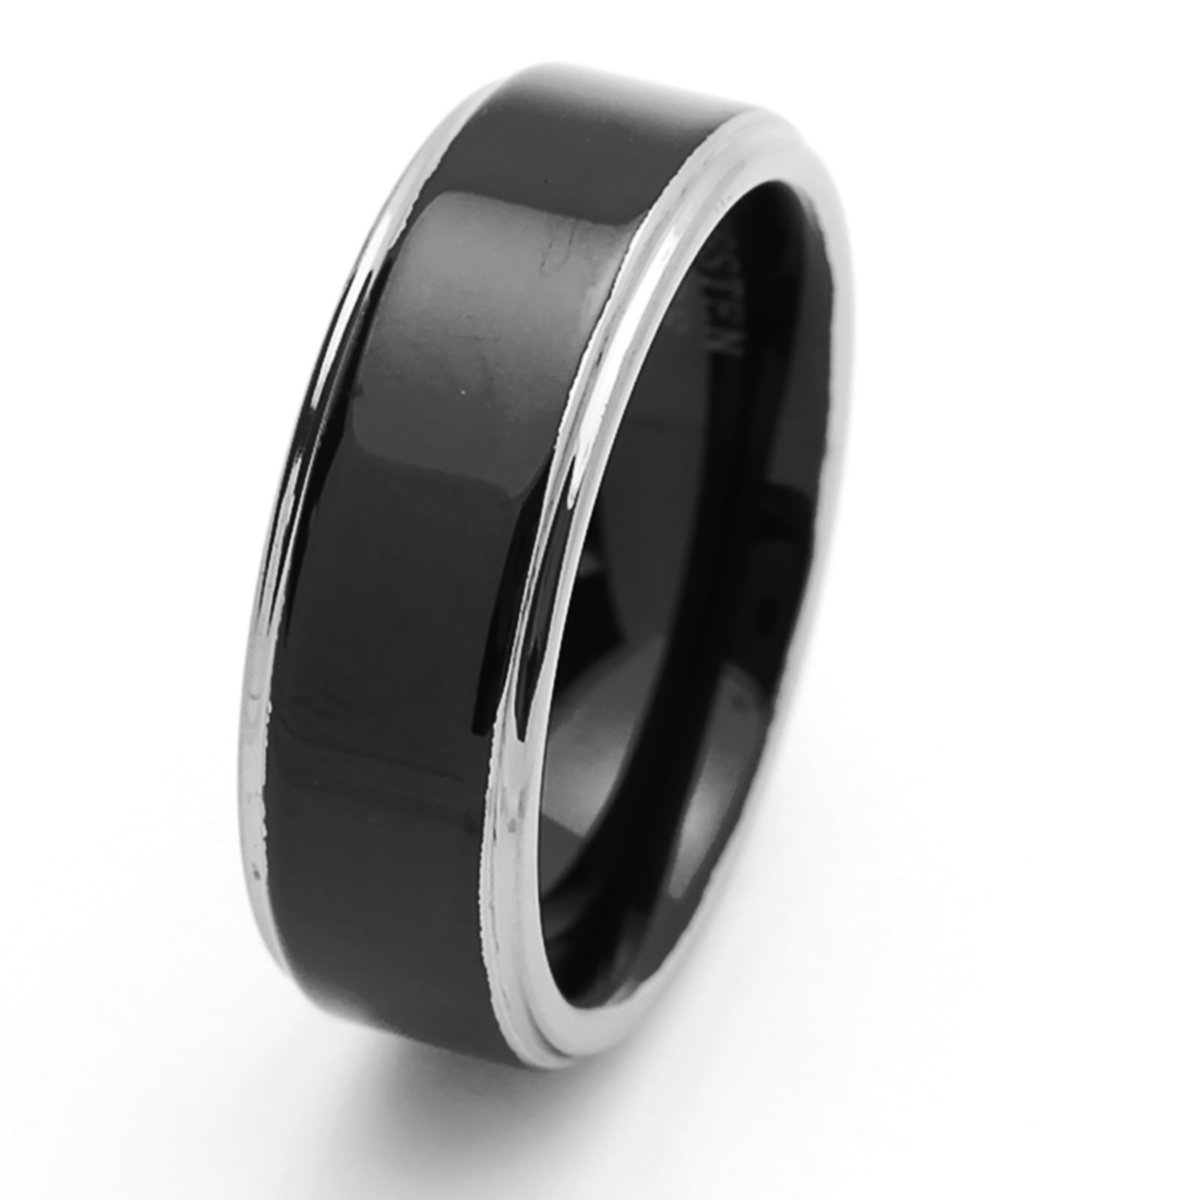 Personalized Inside Engraving Tungsten Carbide Wedding Band Ring 8mm Flat Ring